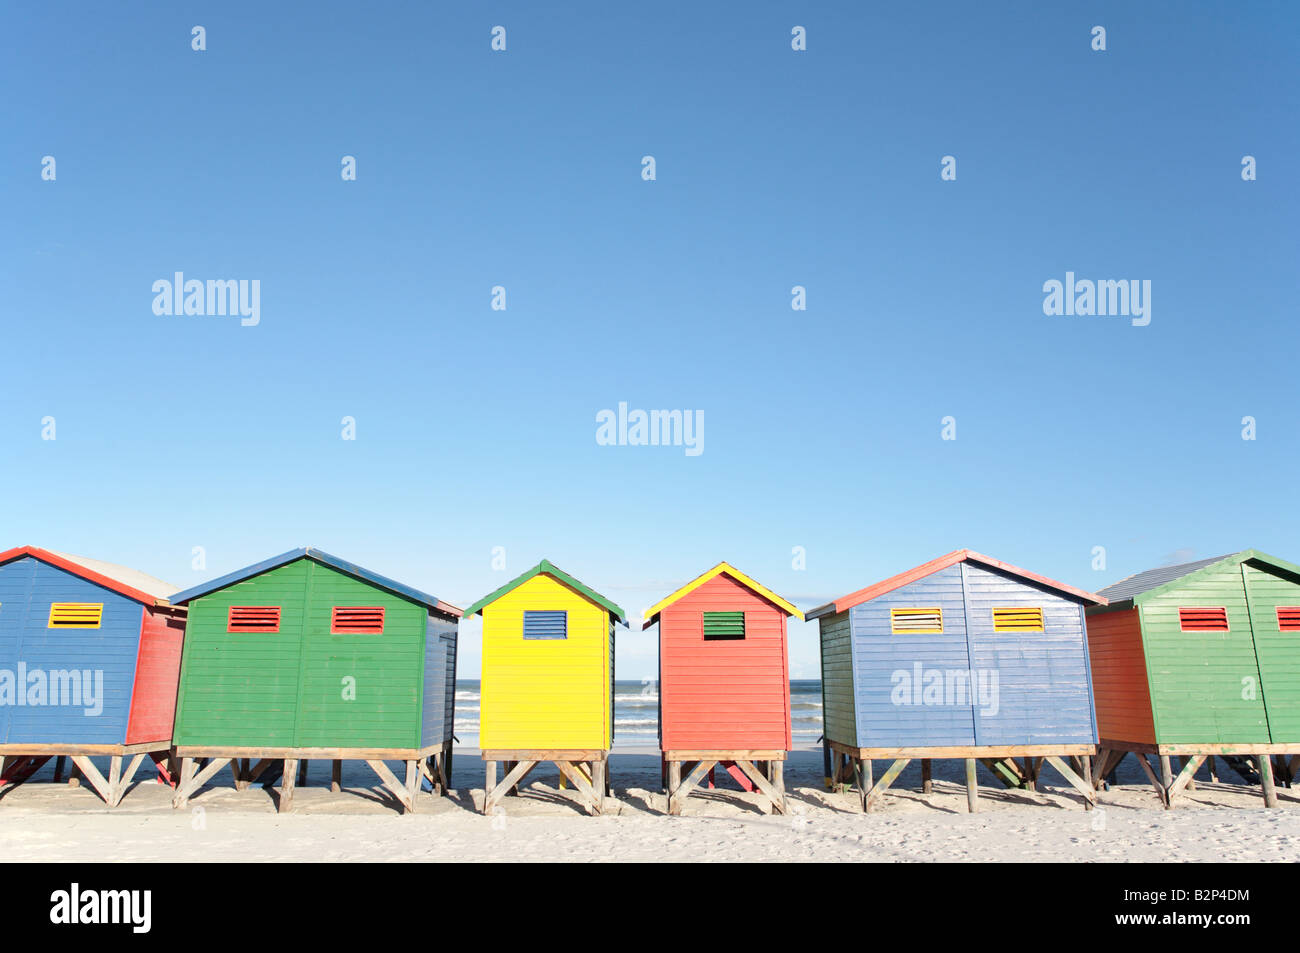 Beach Huts, Muizenberg, South Africa - Stock Image